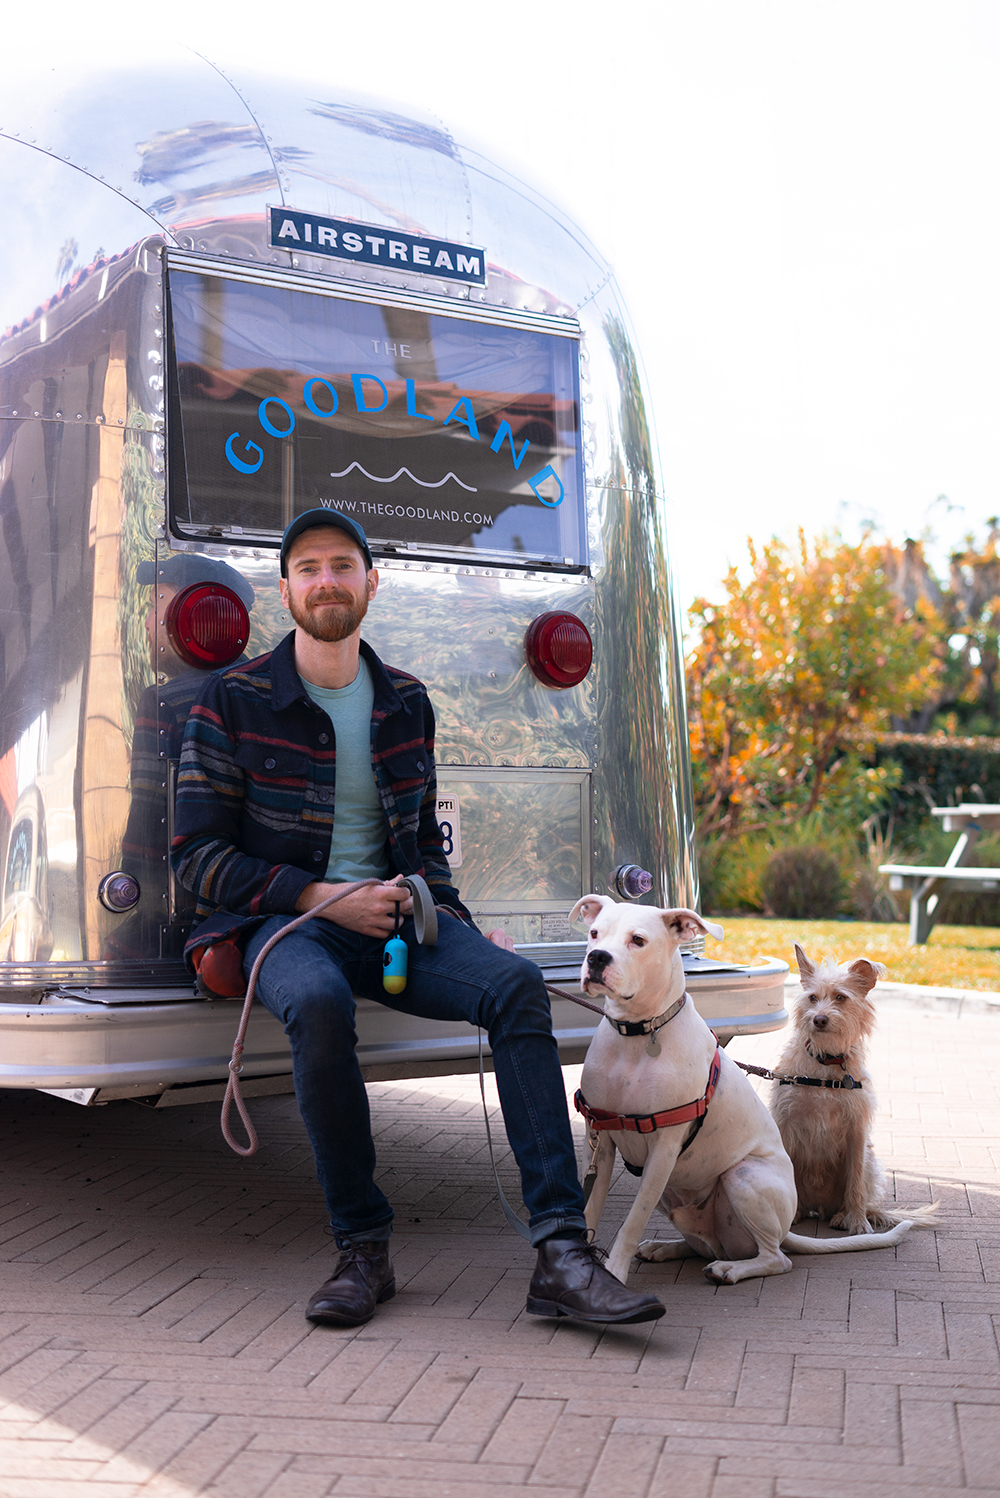 14goodland-santabarbara-hotel-travel-dogs-airstream